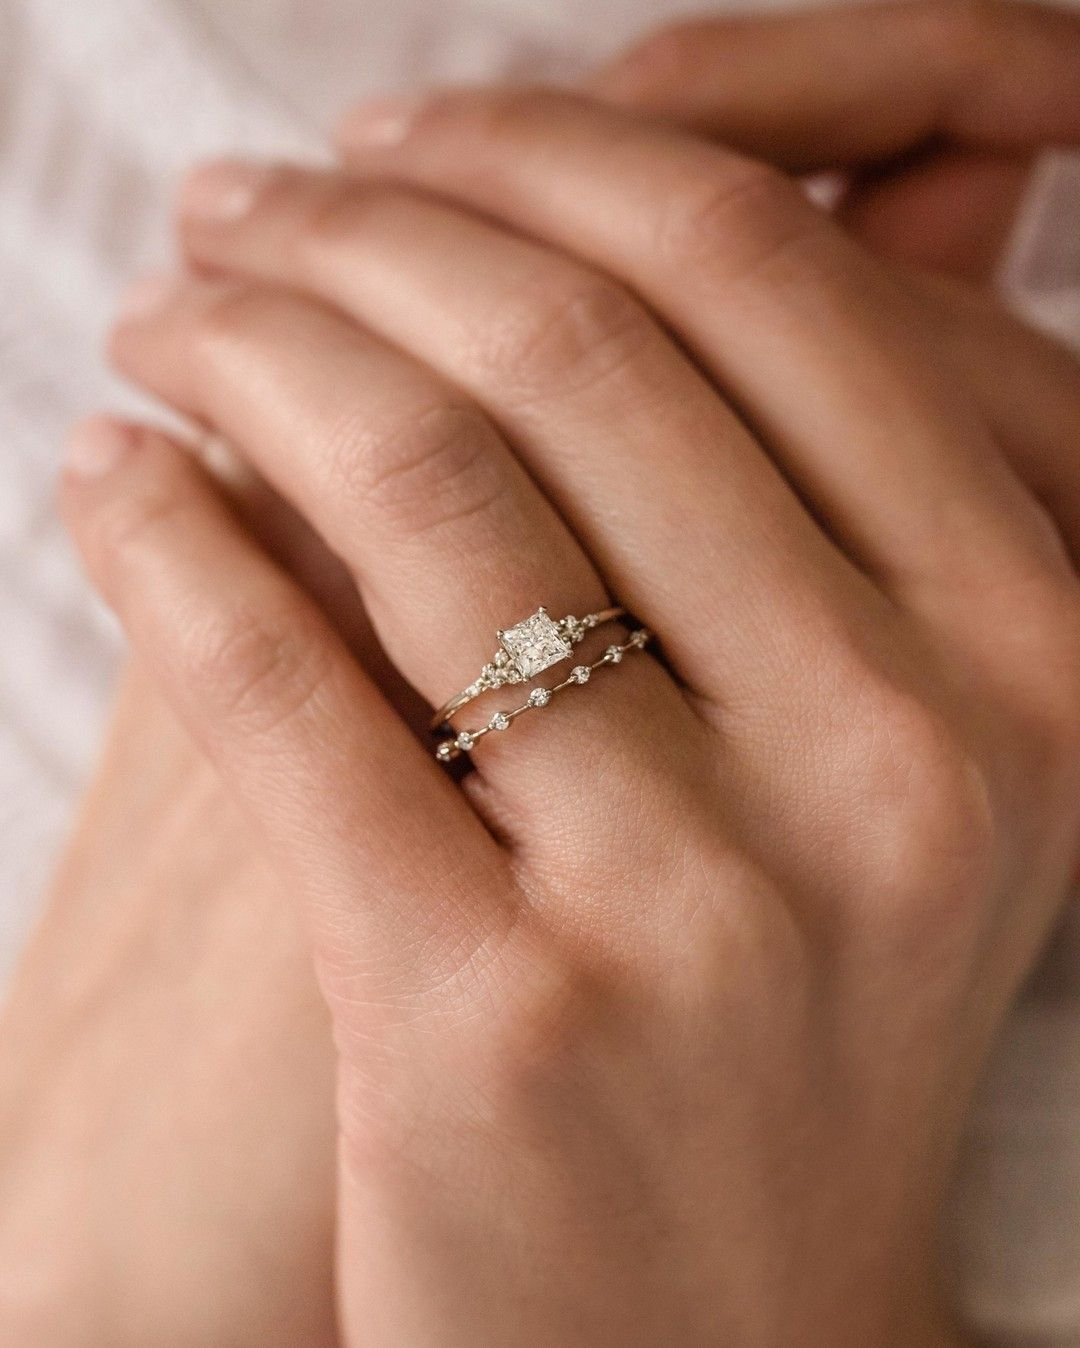 A dainty white gold engagement ring- the Lighthouse Ring with a 0.5ct. princess